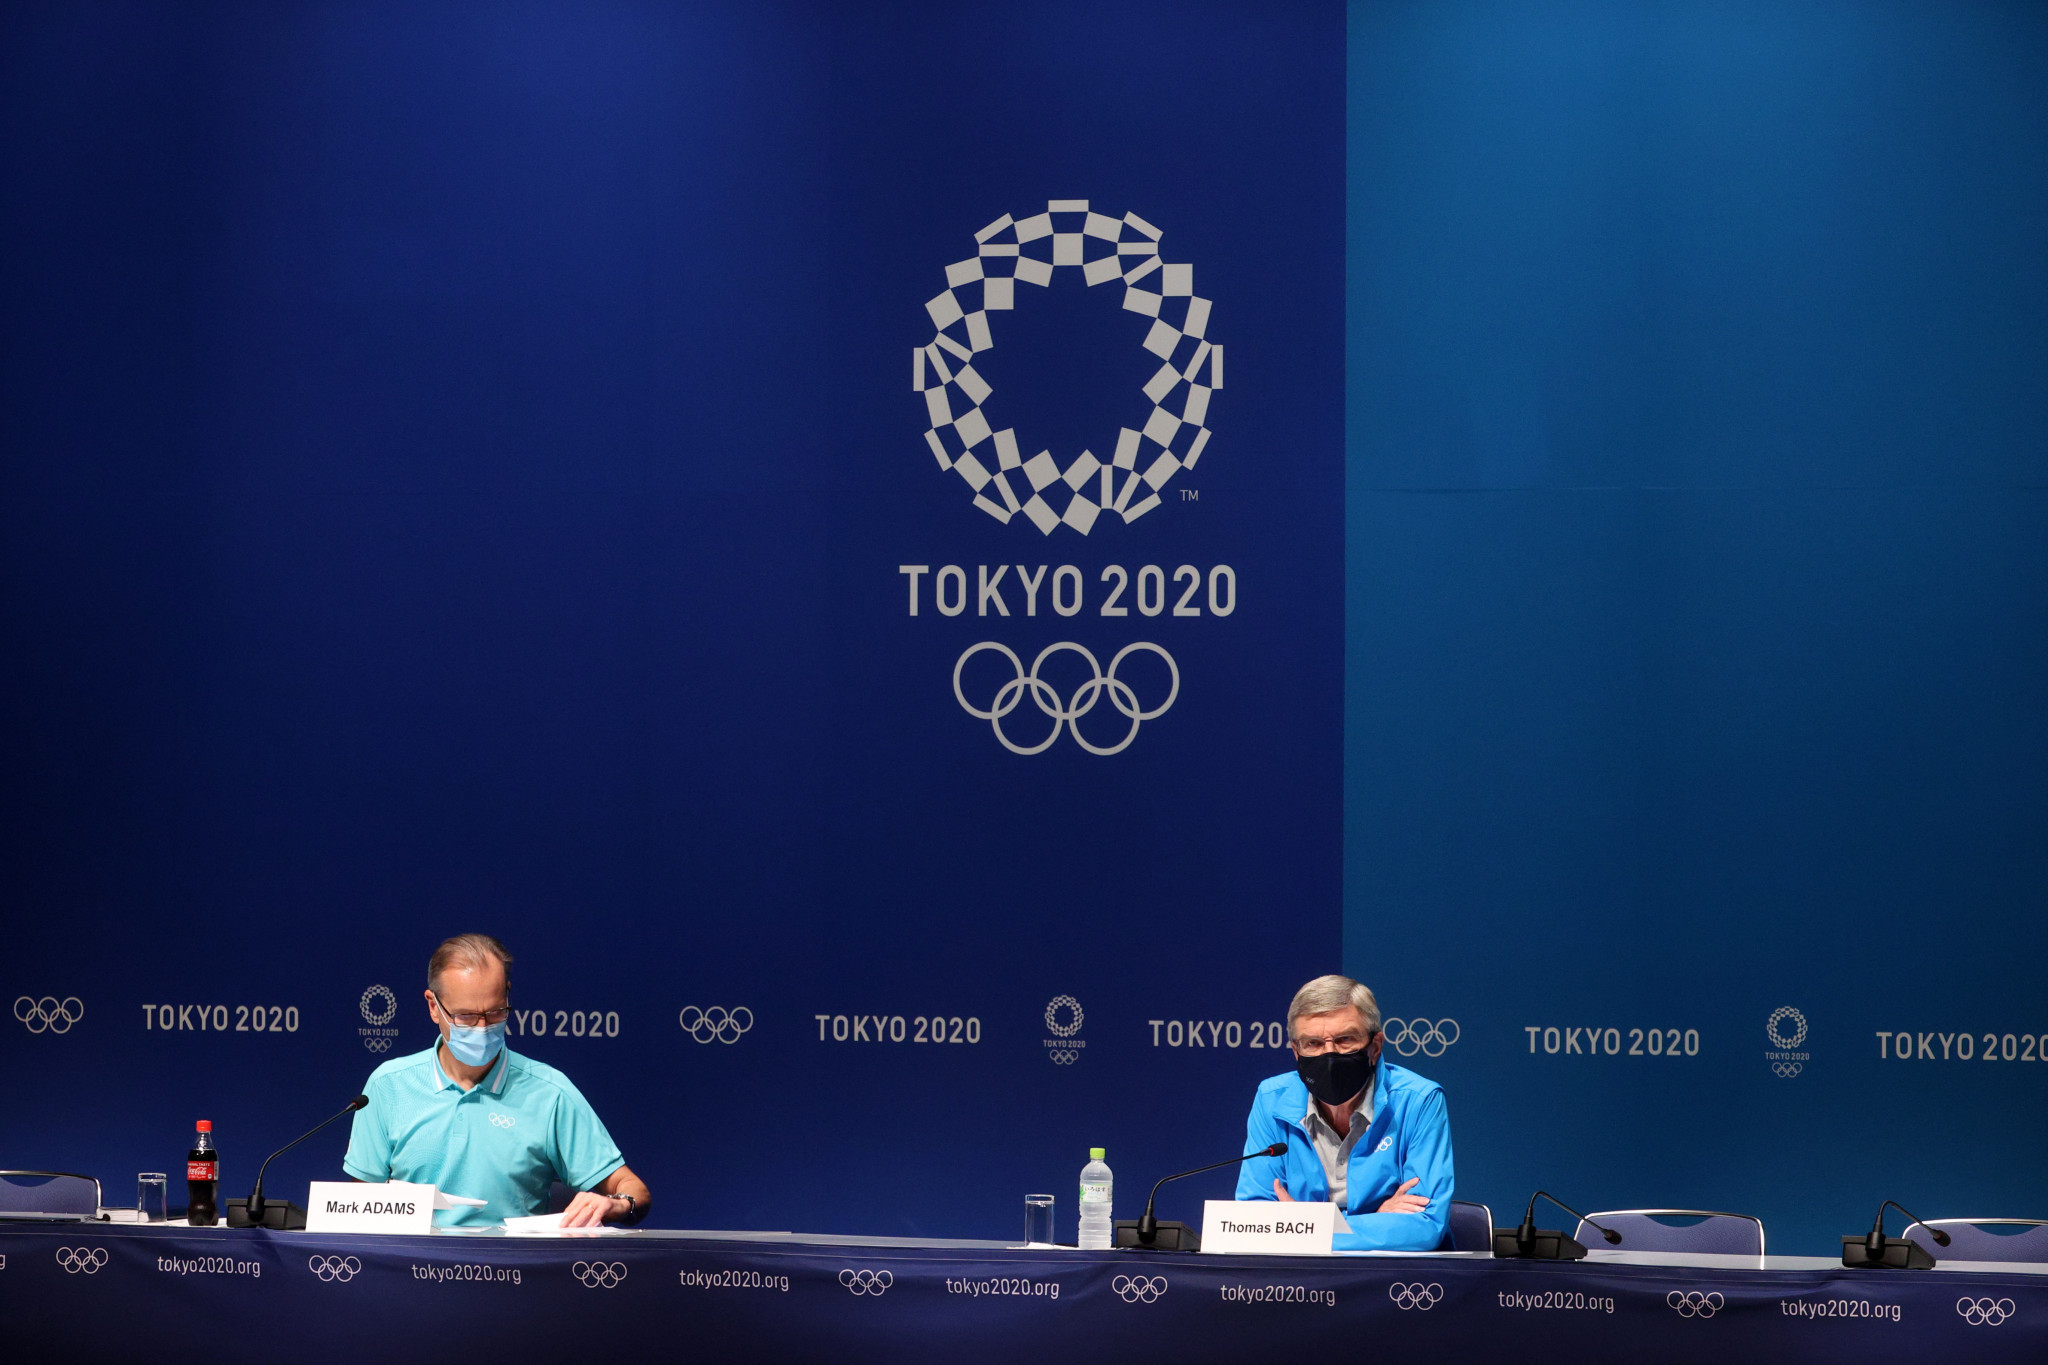 IOC accused of failure to address human rights concerns prior to Beijing 2022